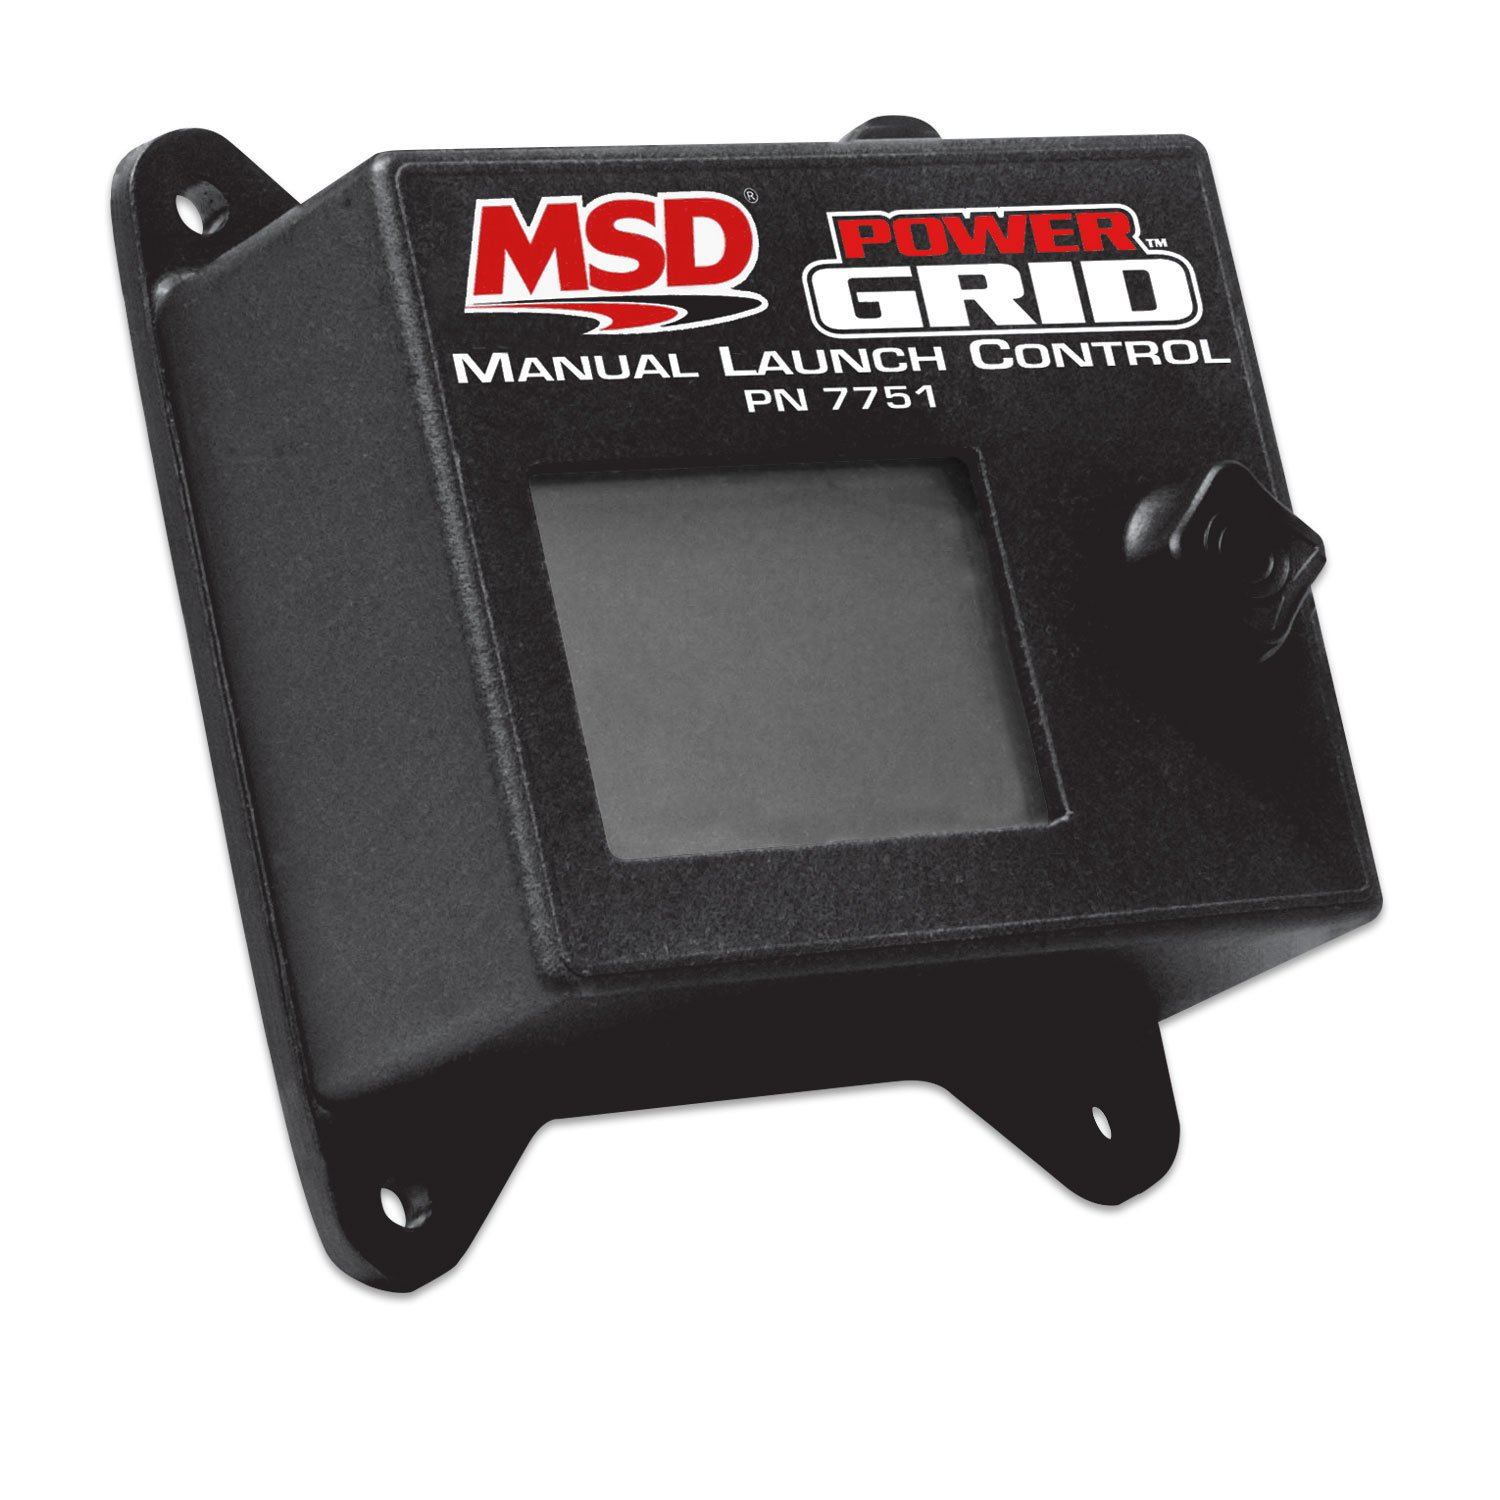 msd 7751 manual launch control module for power grid system manual launch control module for power grid system